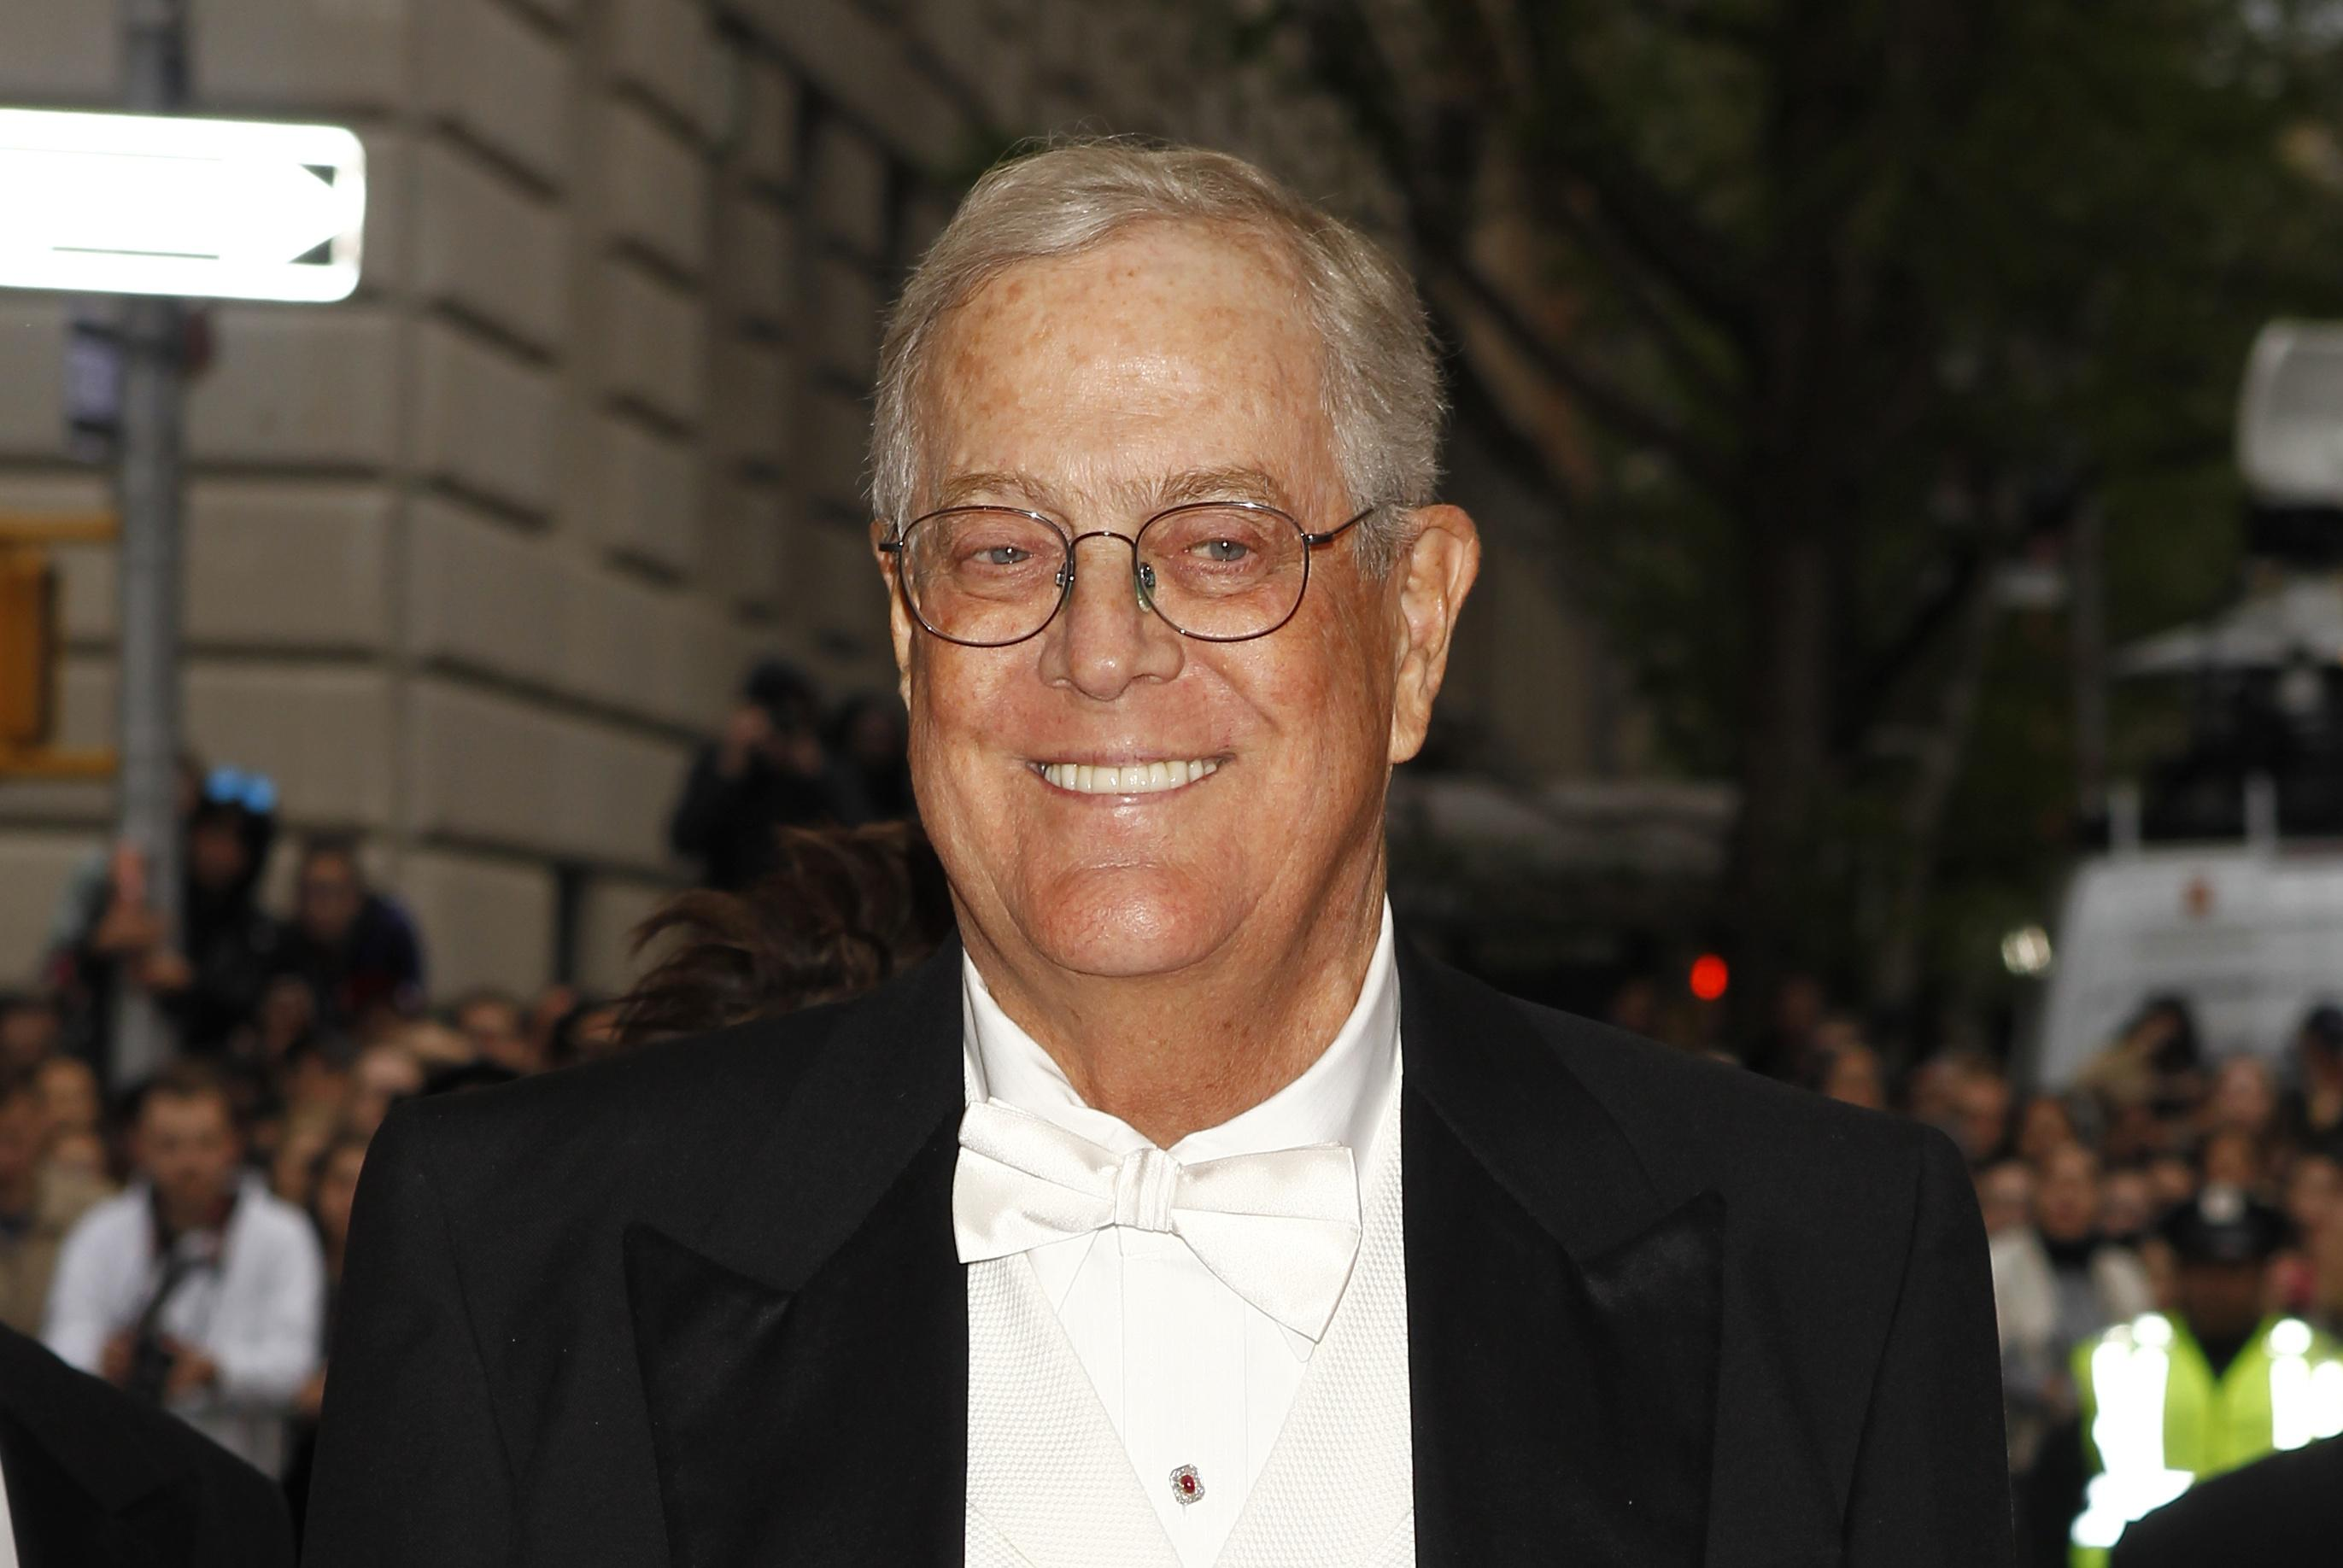 David Koch resigning from Koch Industries, political organizations